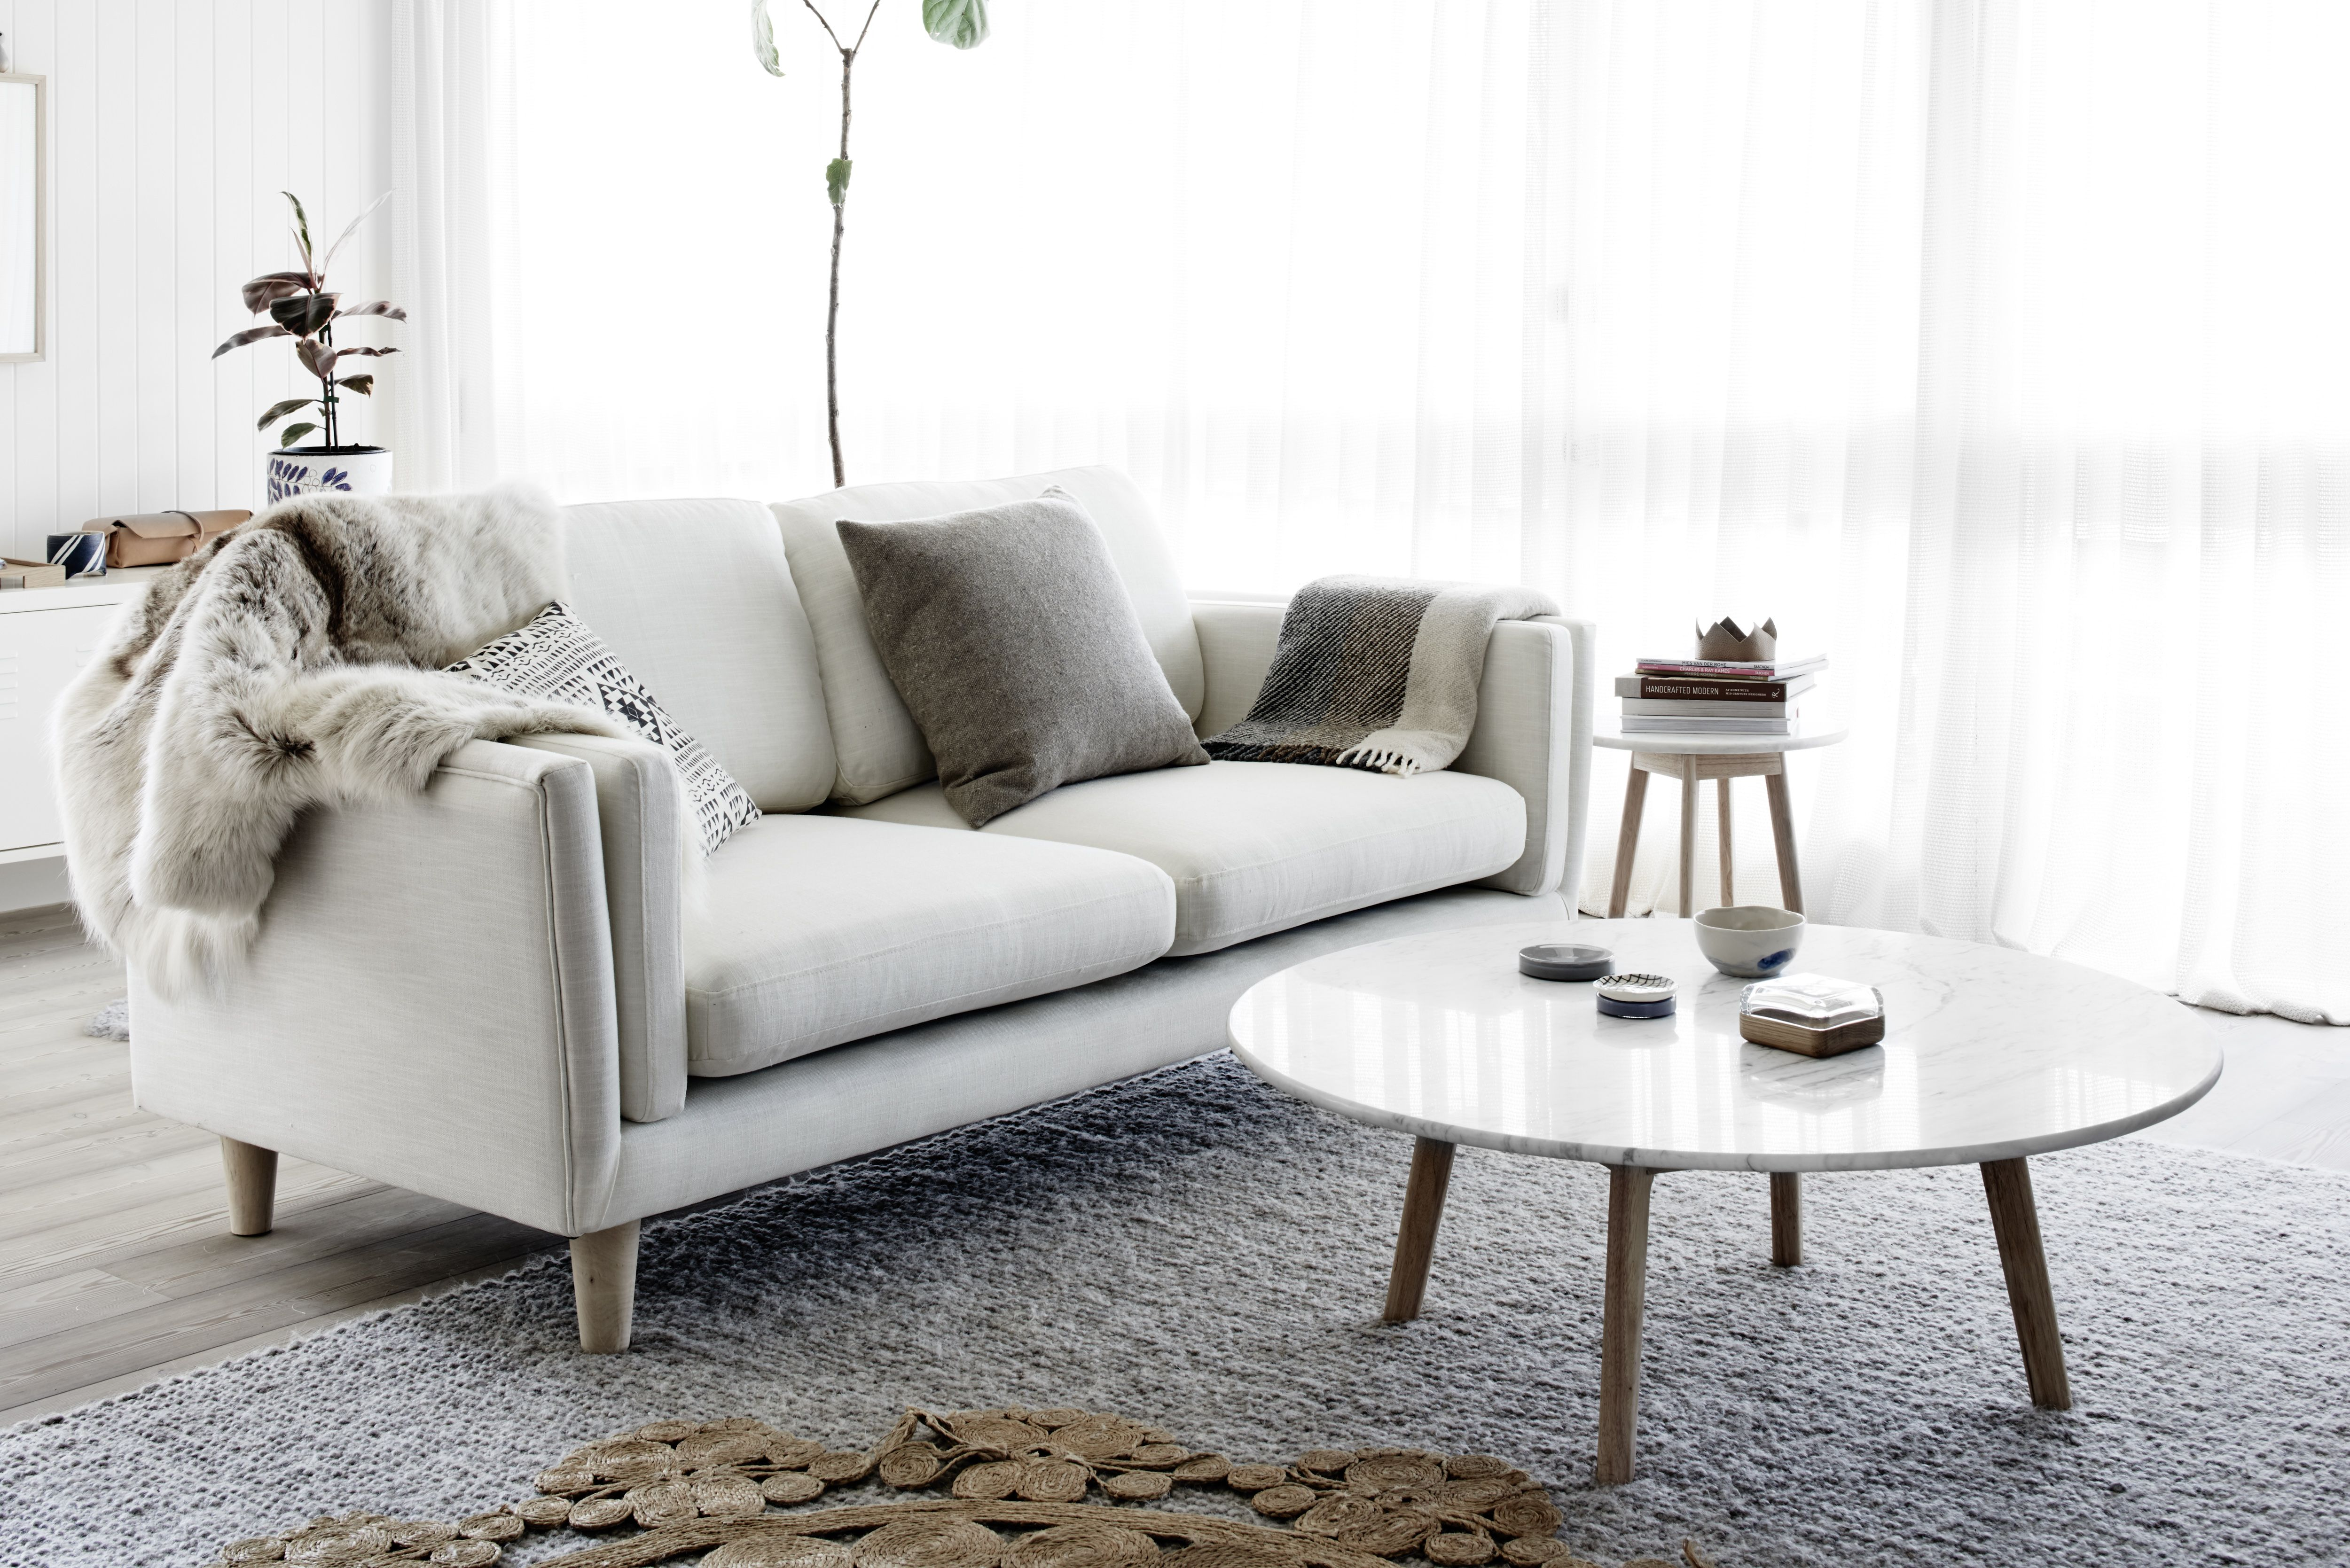 Harpers Project Round Marble Coffee Table Scandinavian Design And